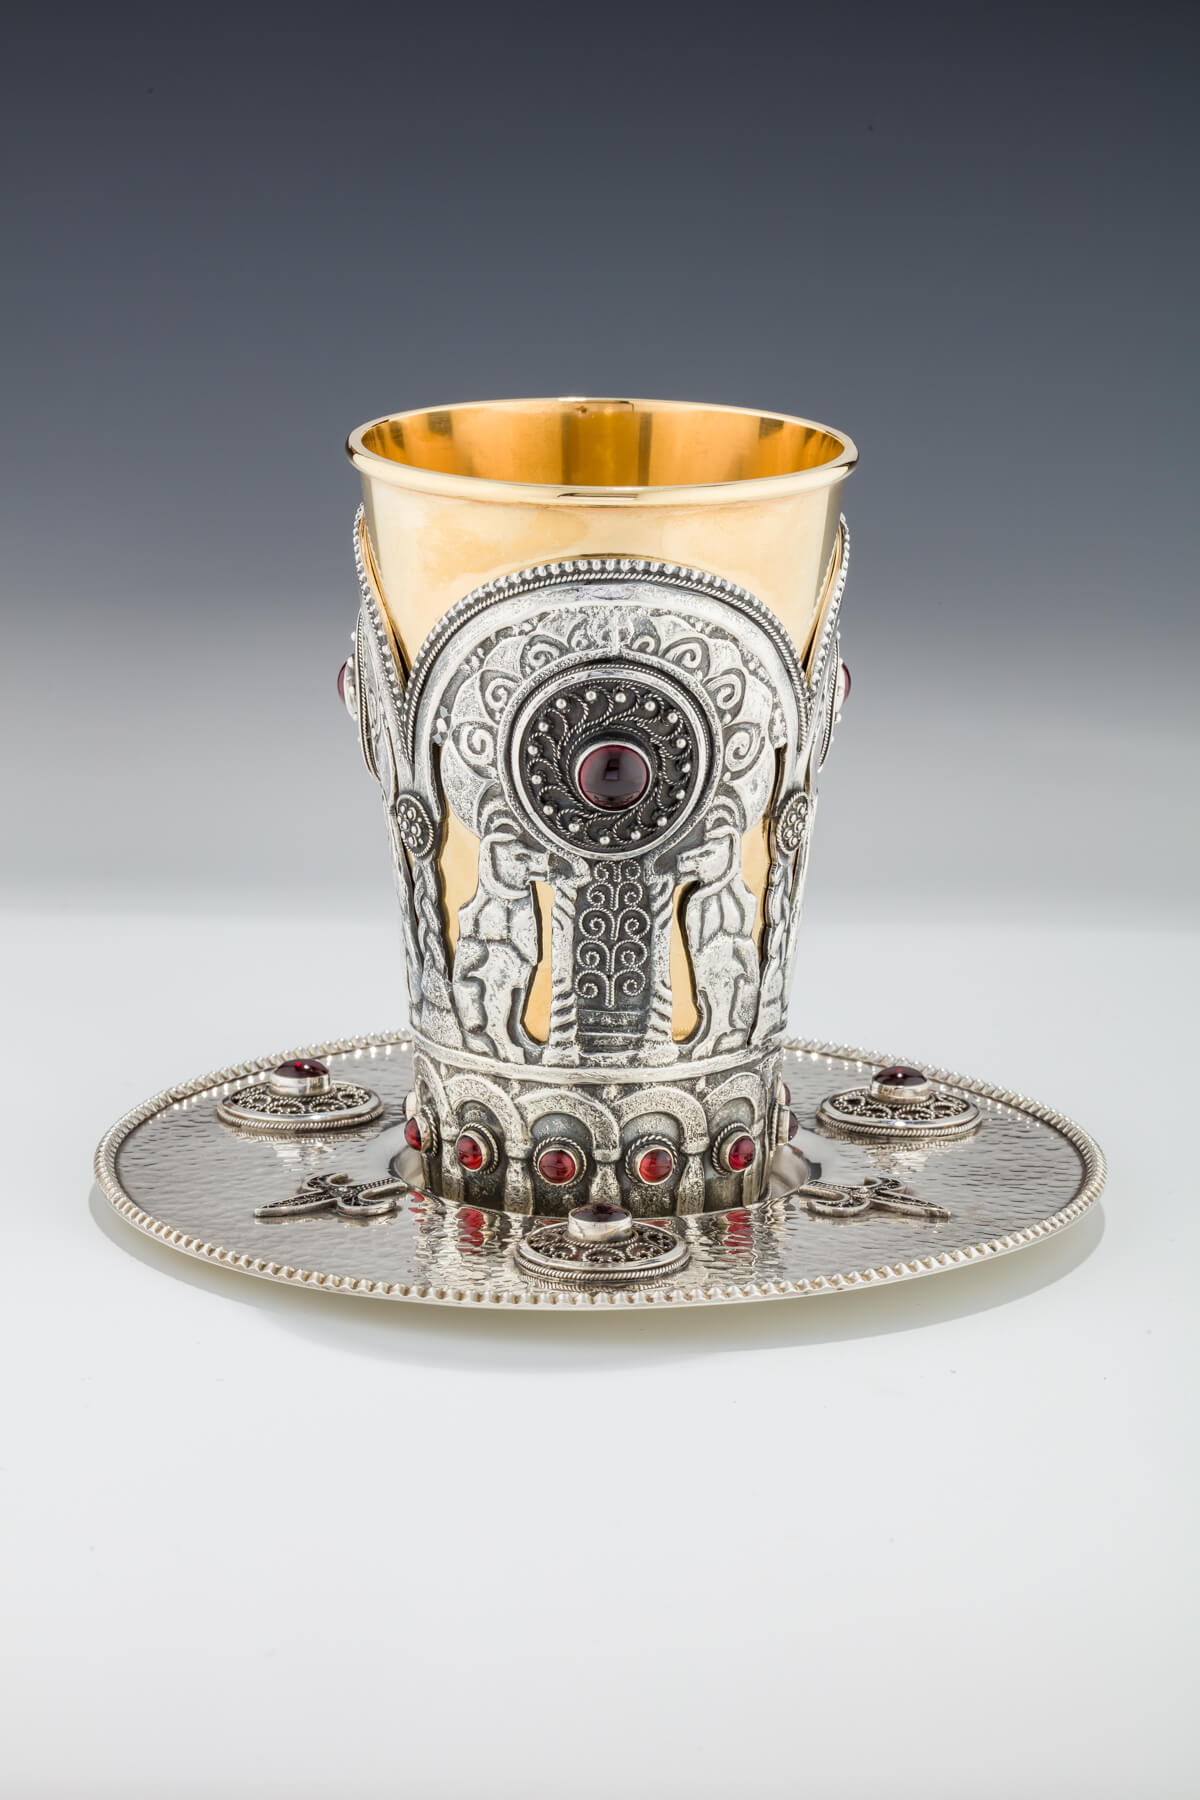 141. A Sterling Silver Kiddush Cup and Underplate by Yemini Silversmiths